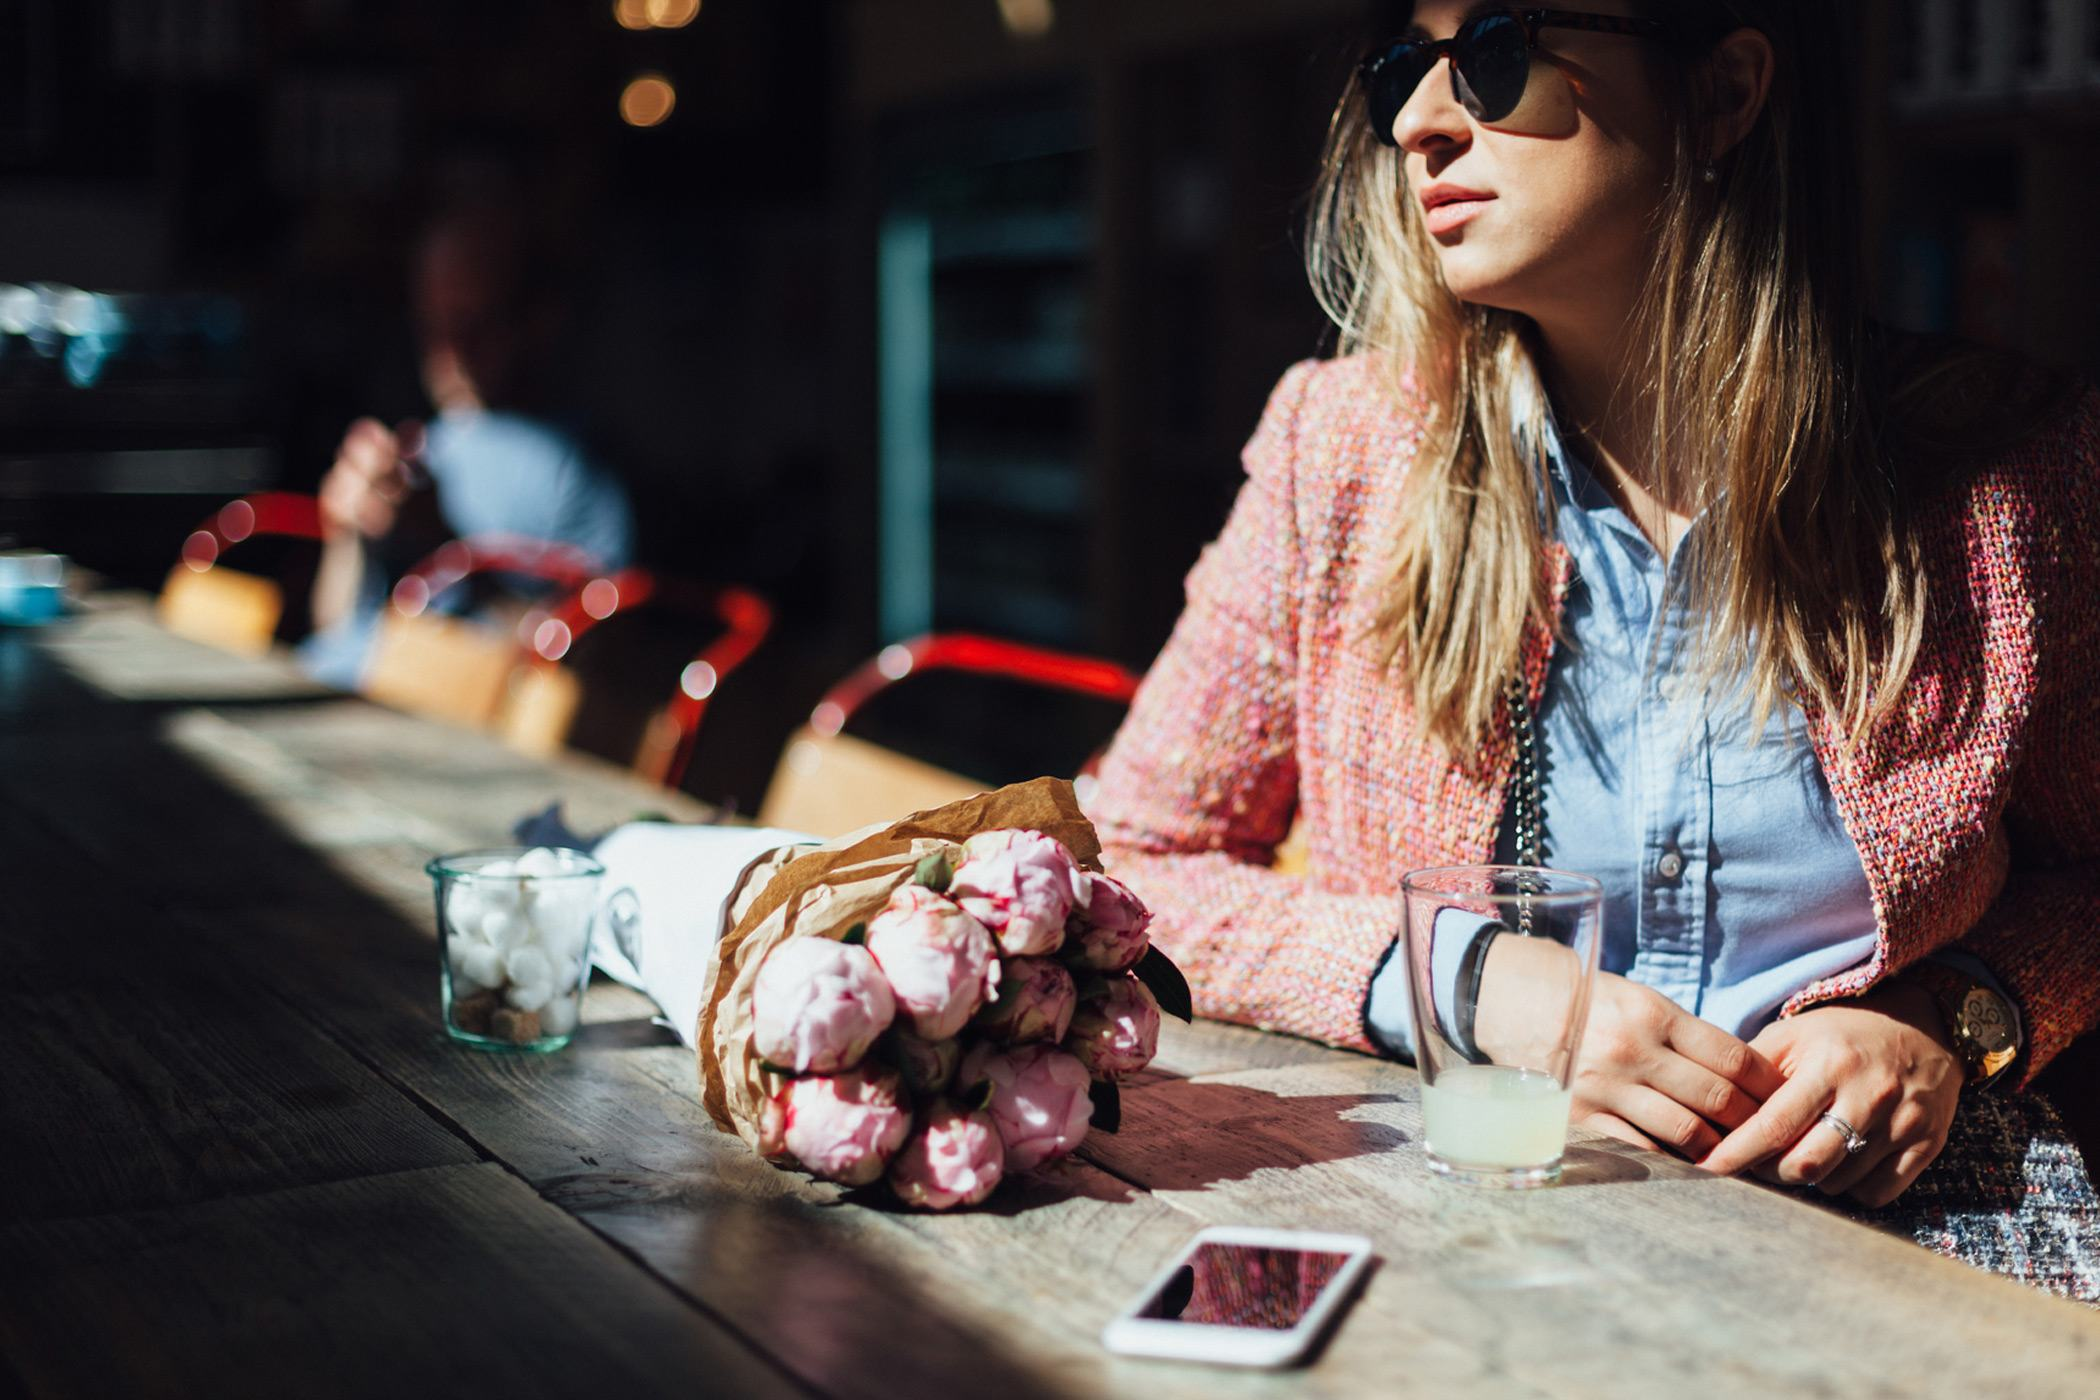 woman wearing sunglasses pink sweater and blue shirt sitting at wooden table with flower bouquet and phone